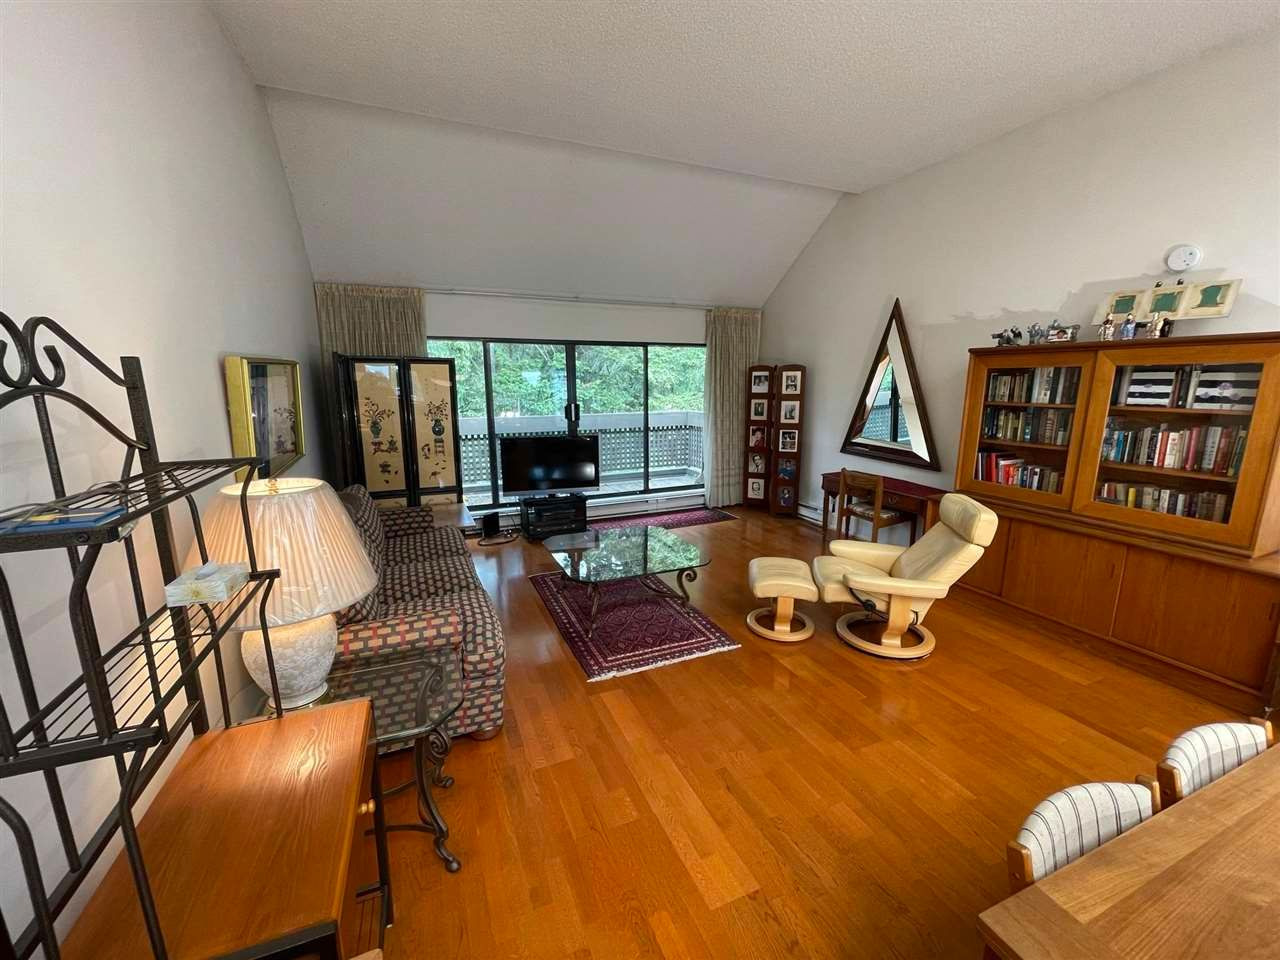 """Main Photo: 409 333 WETHERSFIELD Drive in Vancouver: South Cambie Condo for sale in """"LANGARA COURT"""" (Vancouver West)  : MLS®# R2586908"""